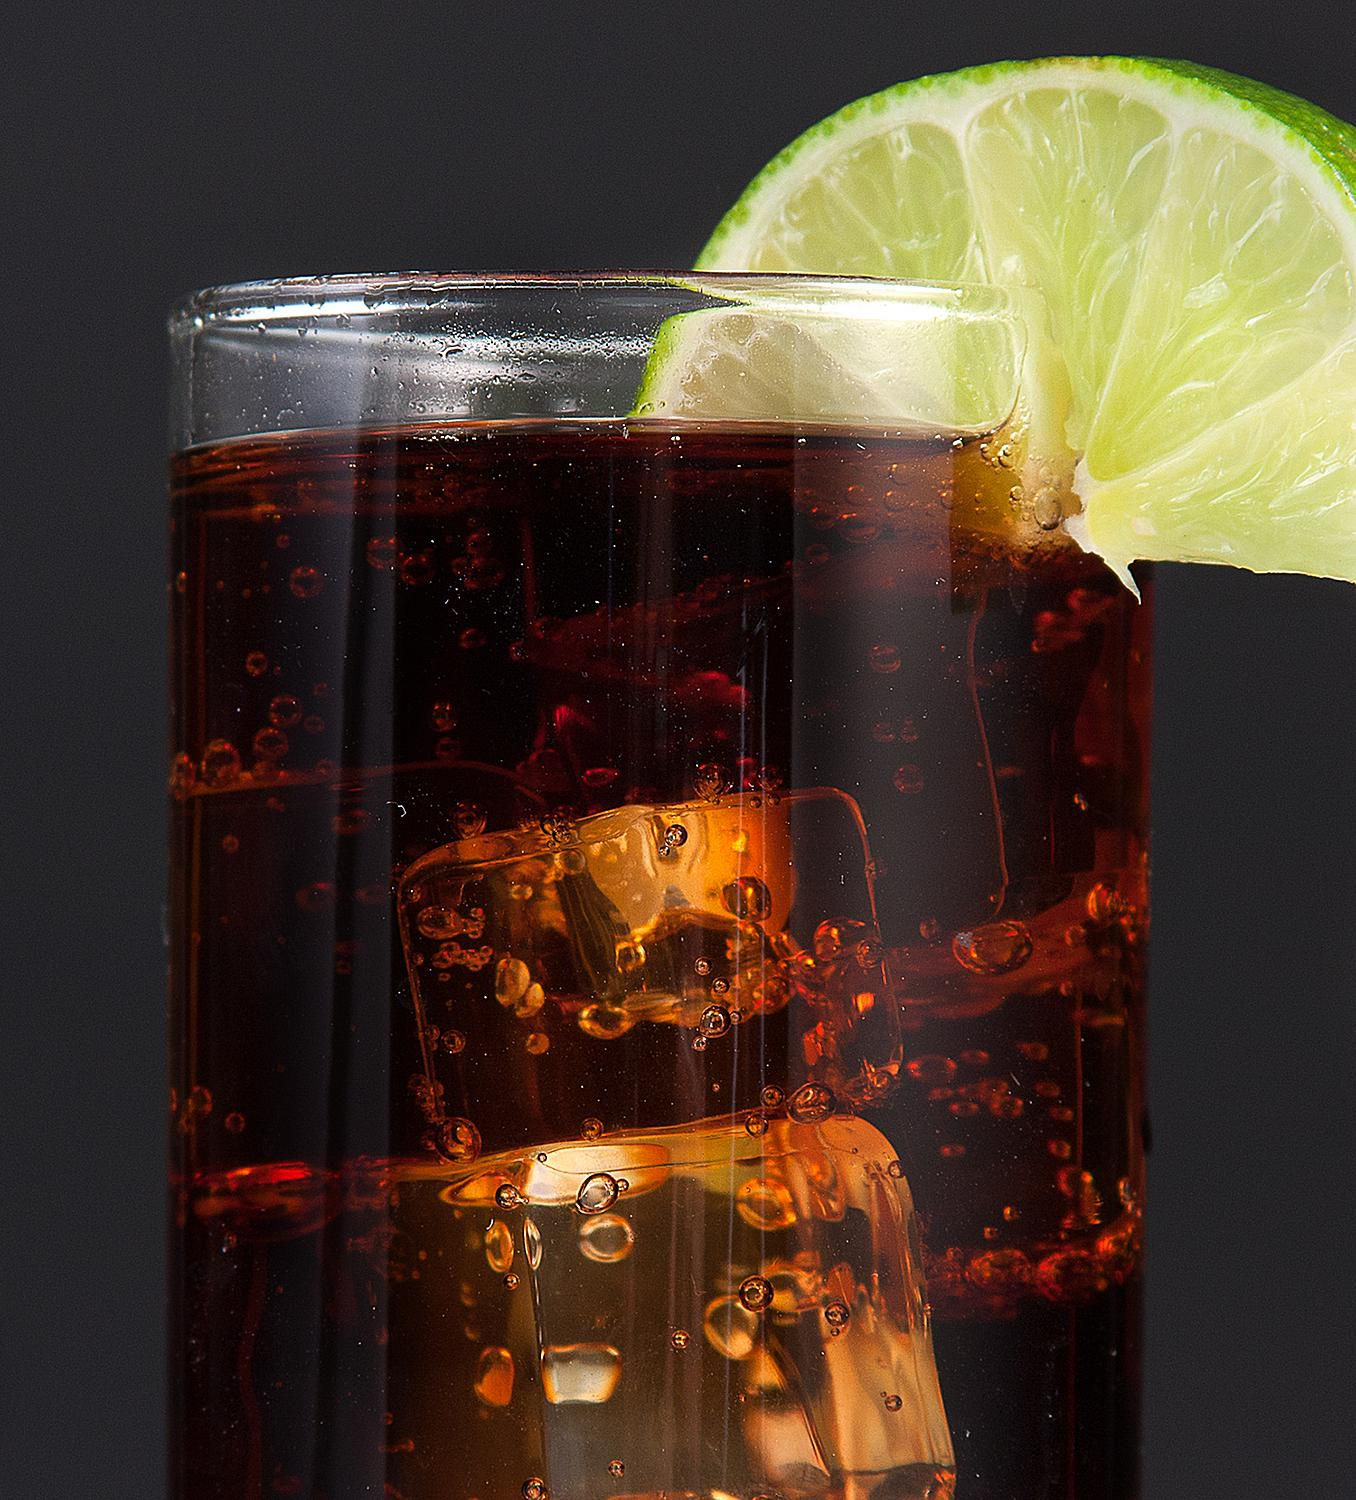 Alcoholic Drink Recipes For Thanksgiving: Lime Cola Non-alcoholic Mixed Drink Recipe